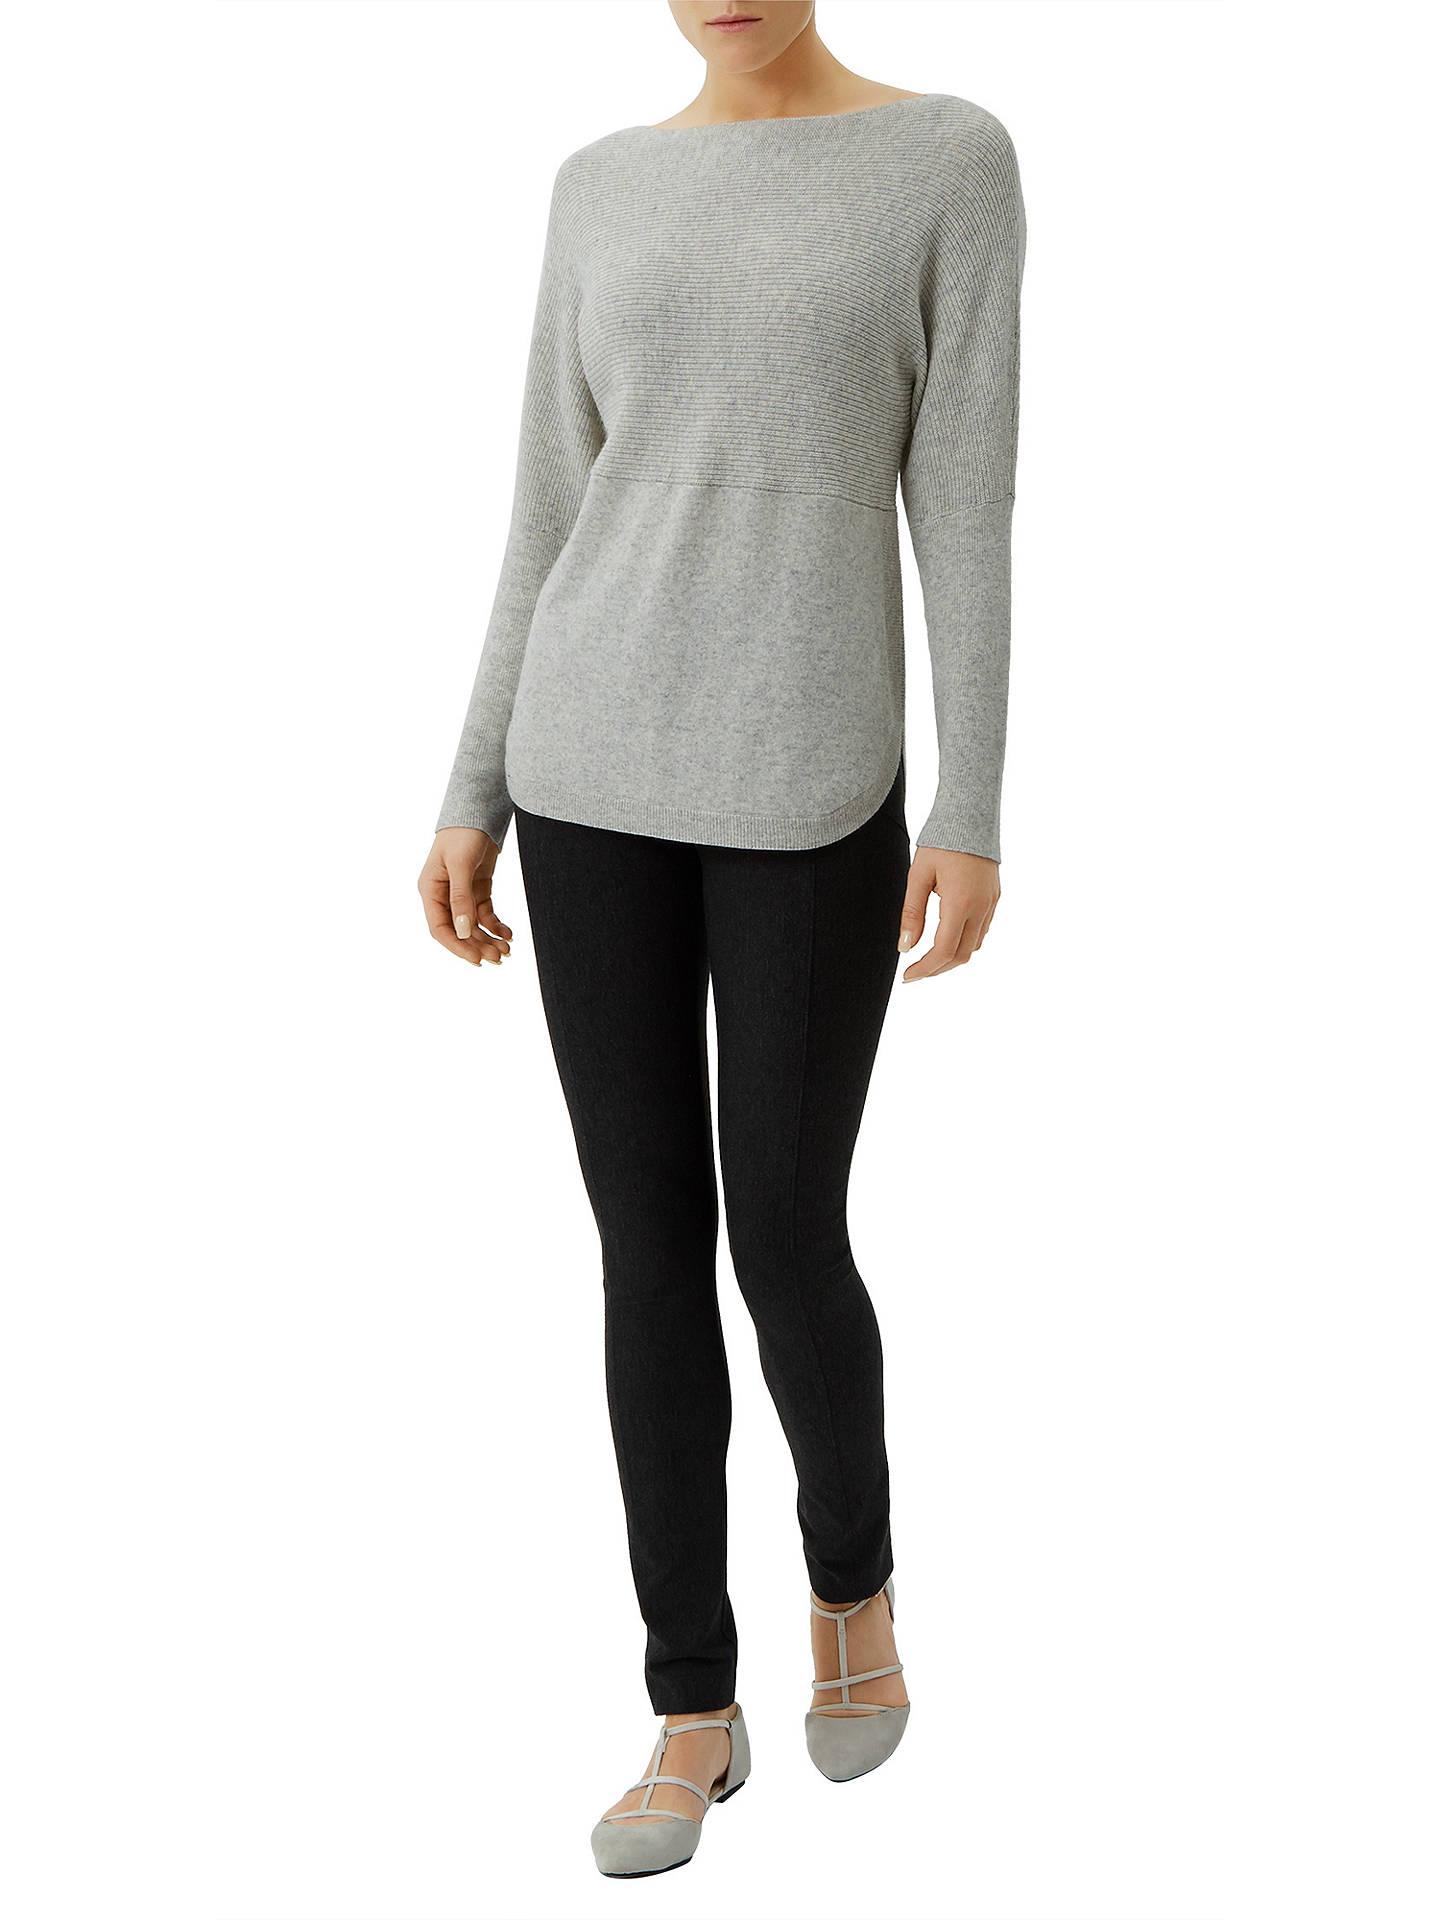 BuyFenn Wright Manson Neptune Jumper, Grey, L Online at johnlewis.com